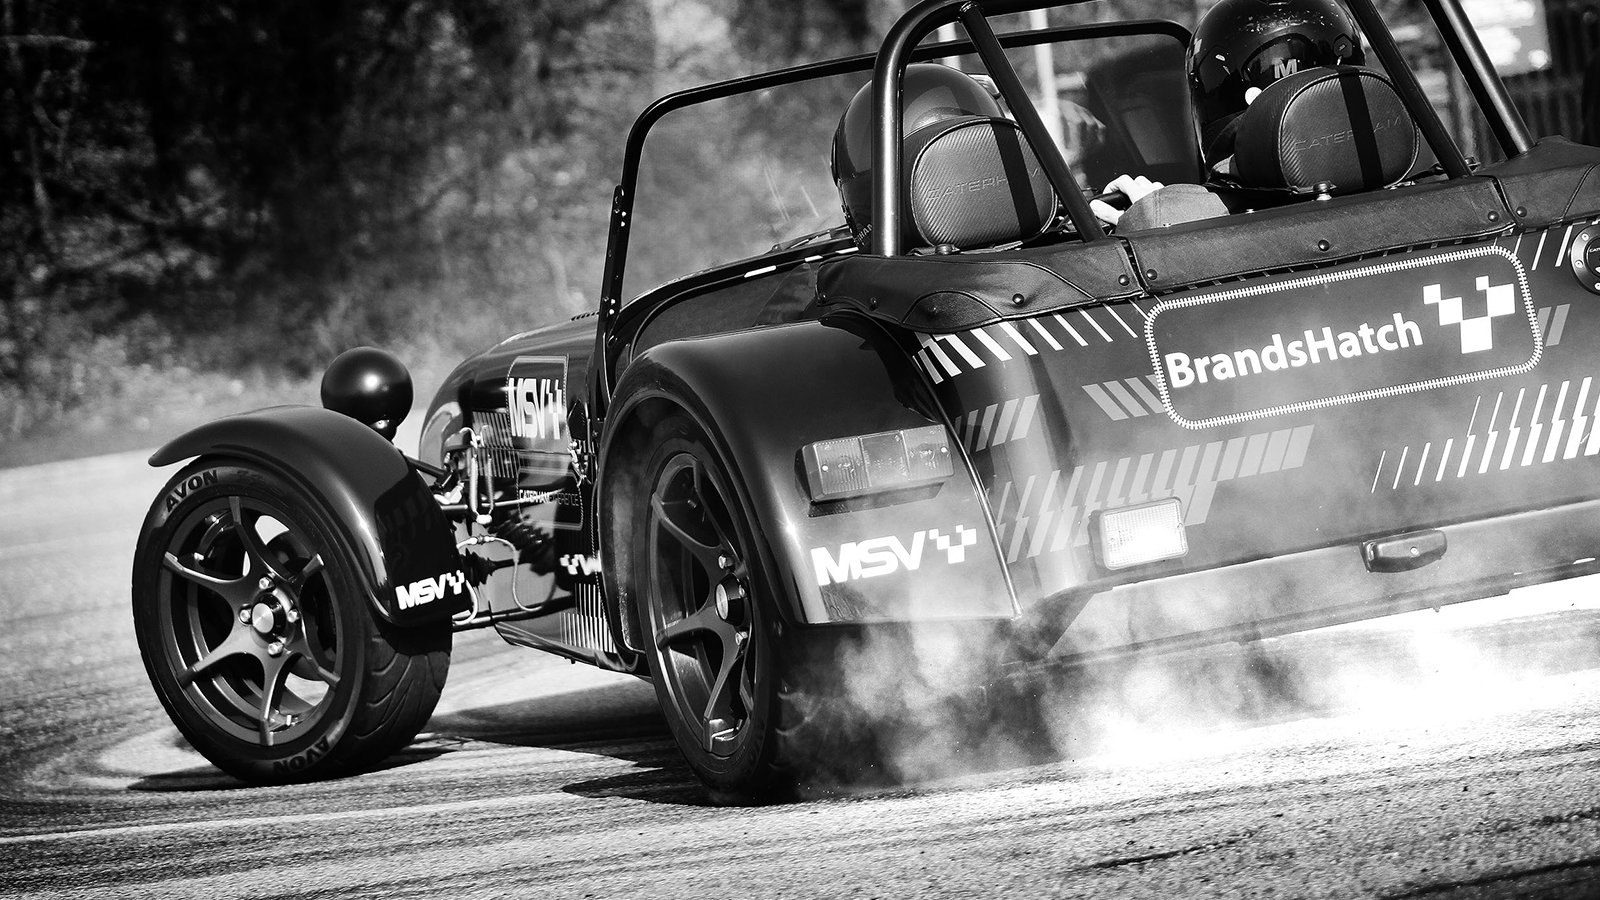 MSV Launches New Caterham Drive Experience at Brands Hatch